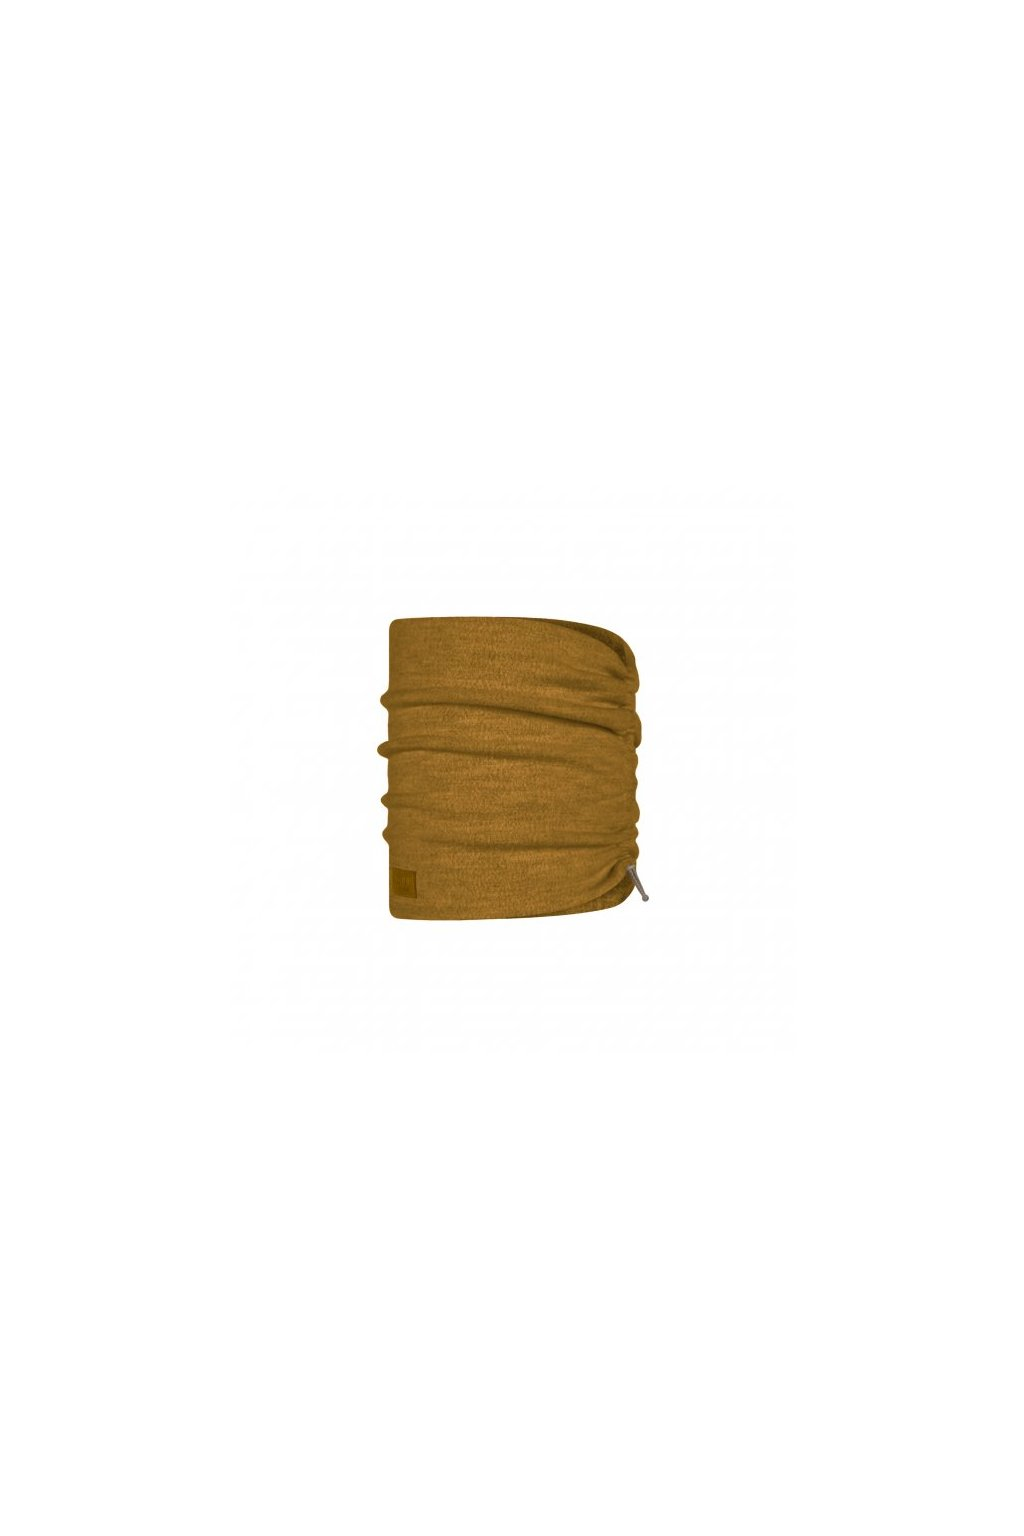 merino wool fleece neckwarmer buff ochre 1241191051000